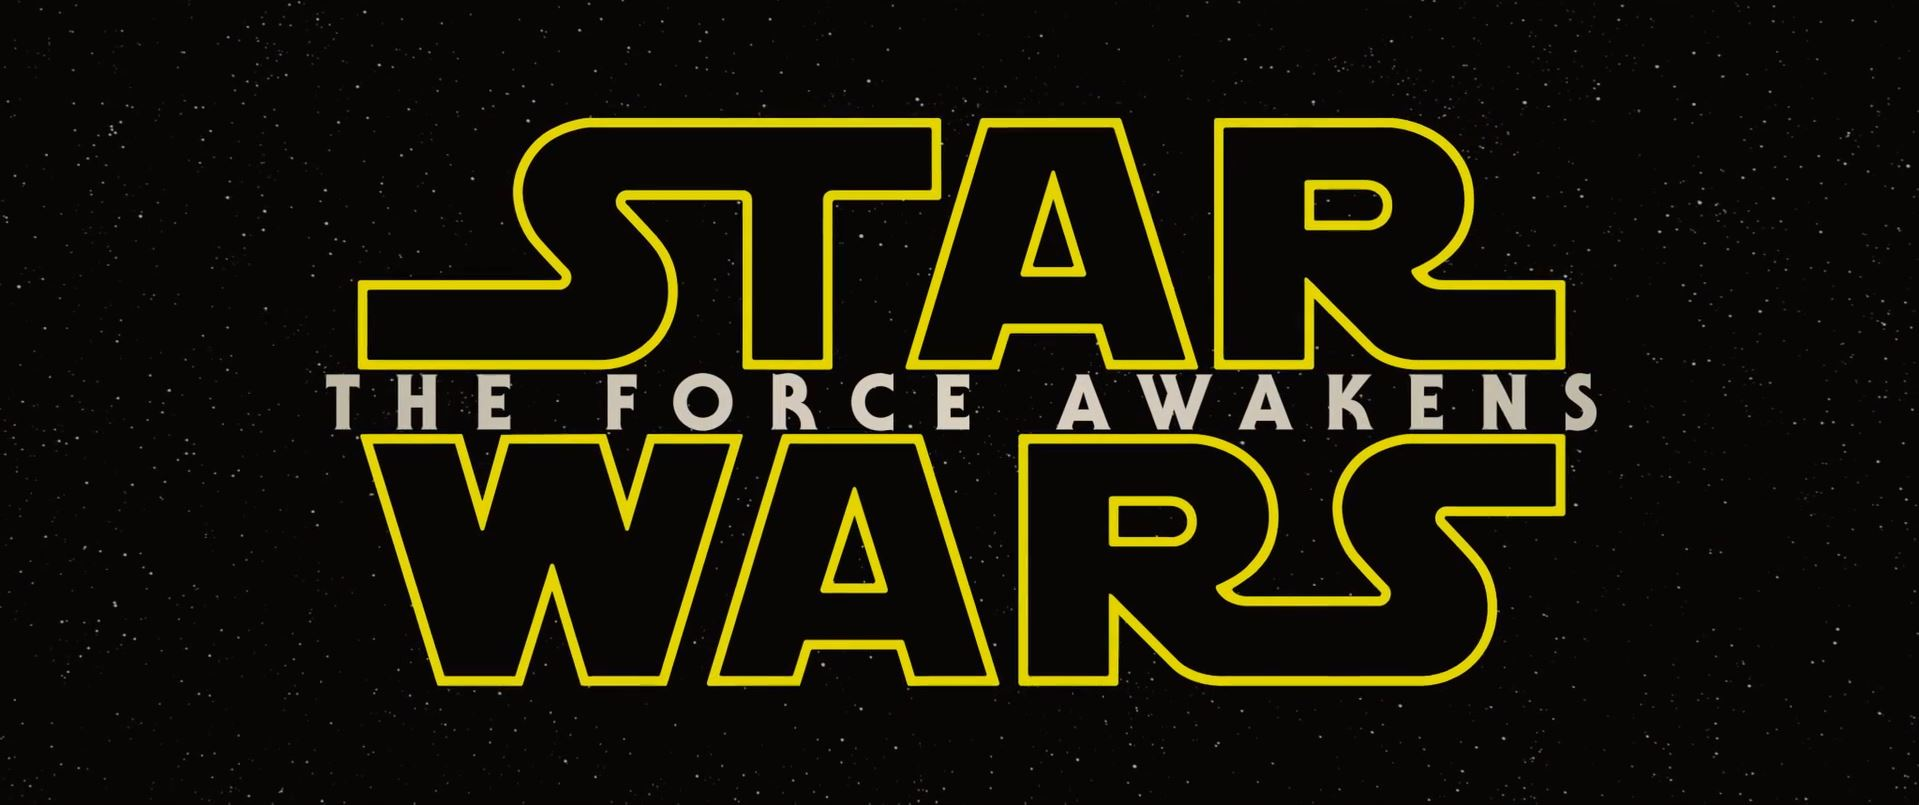 The Force Awakens Logo - Star Wars Episode 7 trailer released